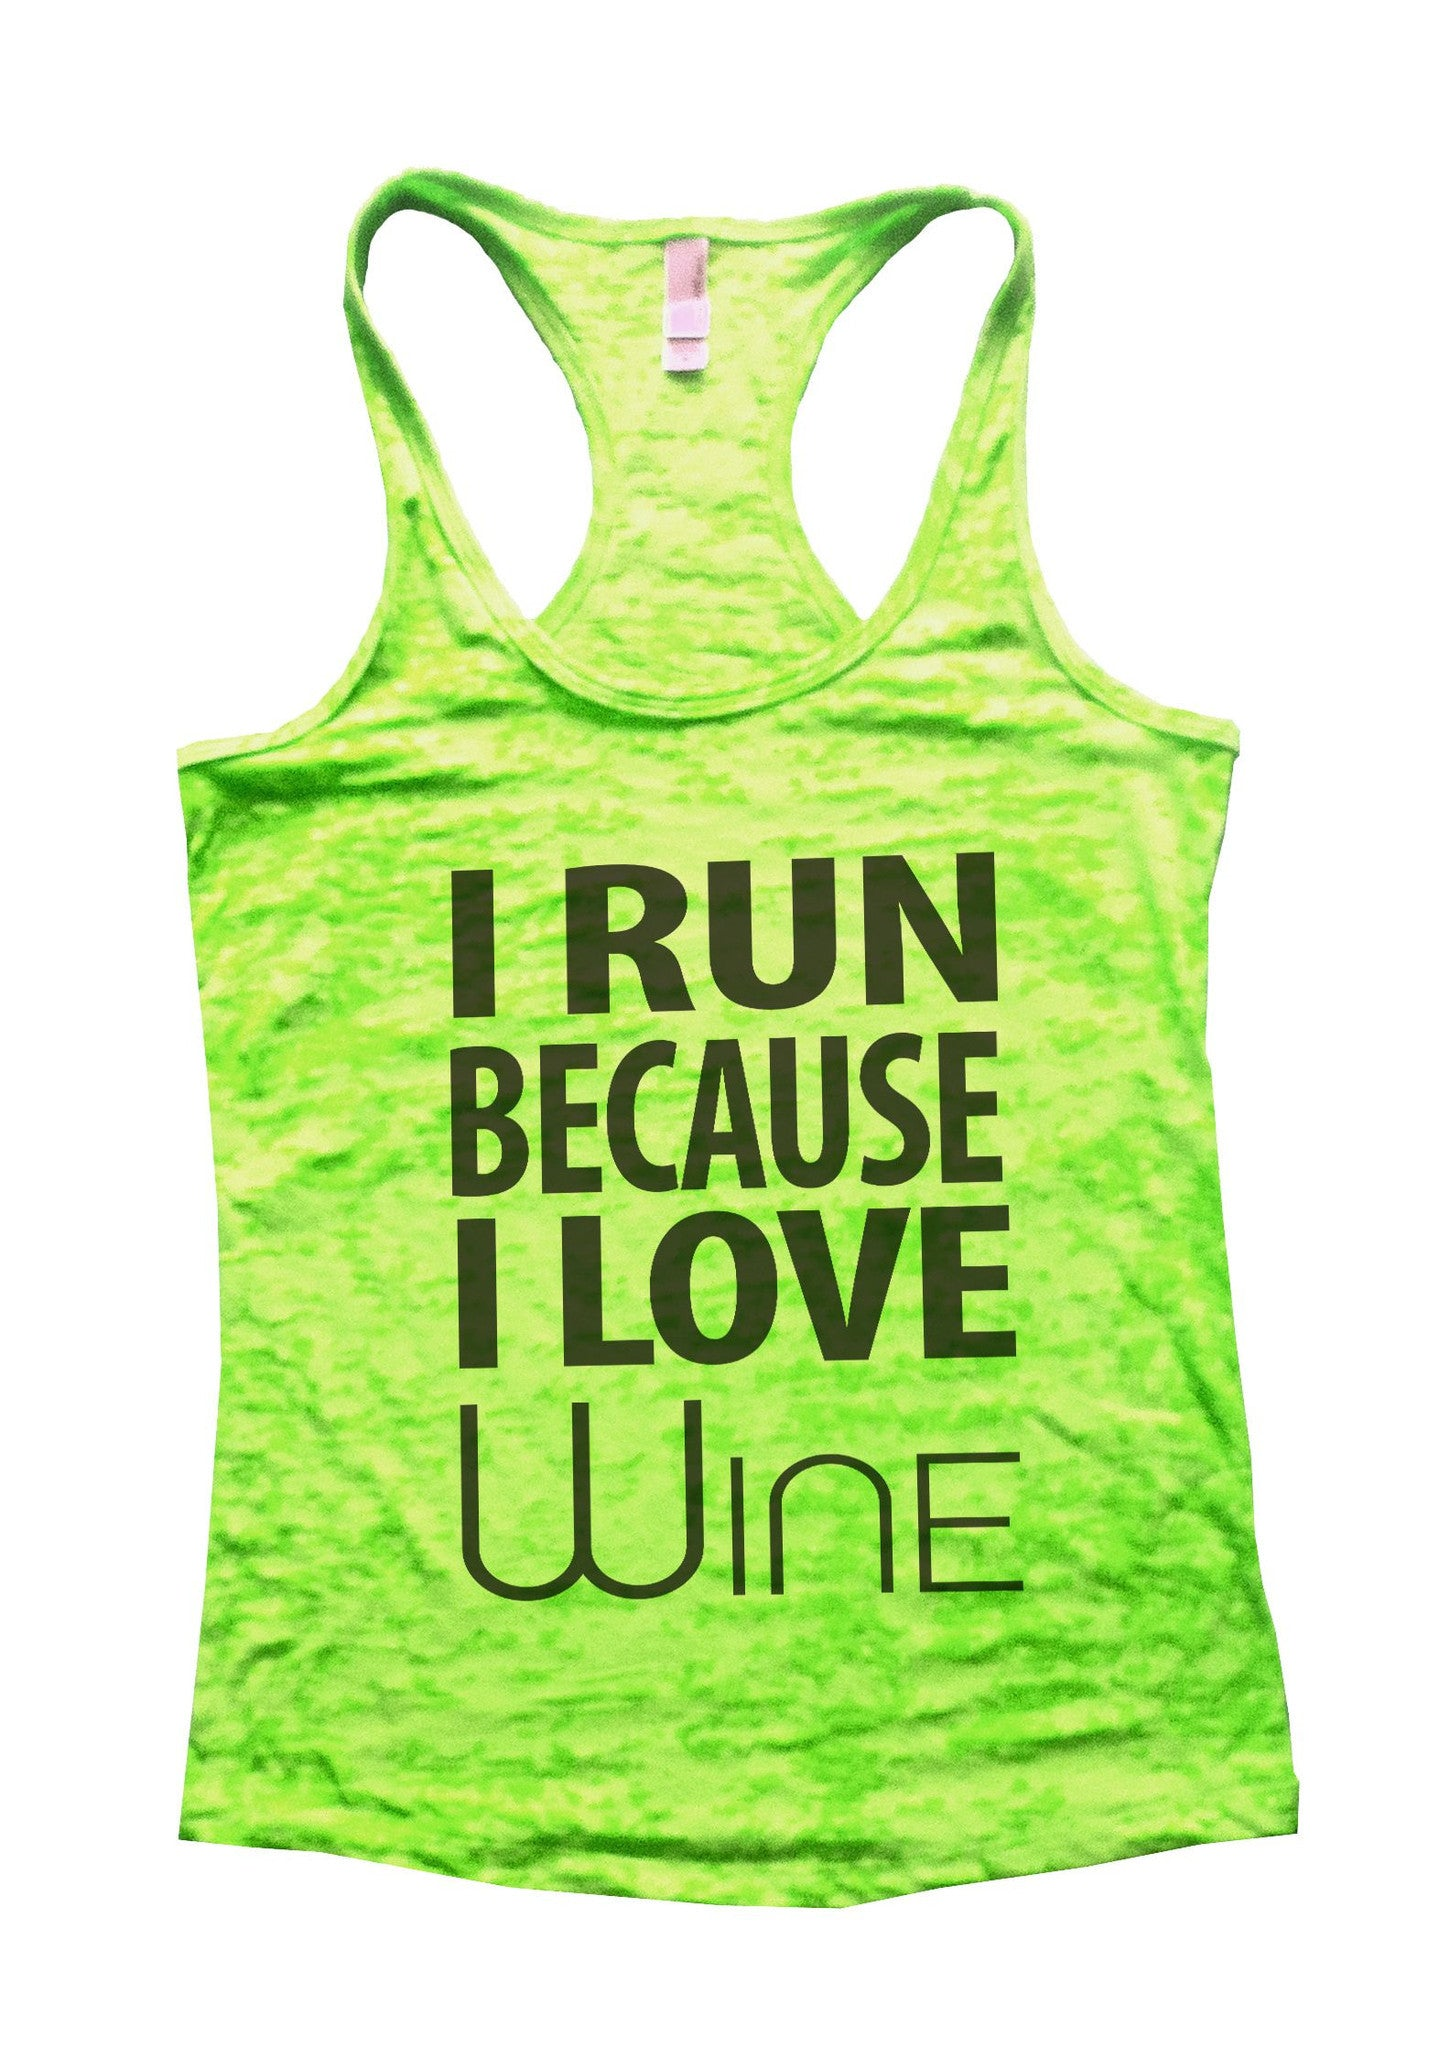 I Run Because I love Wine Burnout Tank Top By BurnoutTankTops.com - 603 - Funny Shirts Tank Tops Burnouts and Triblends  - 3